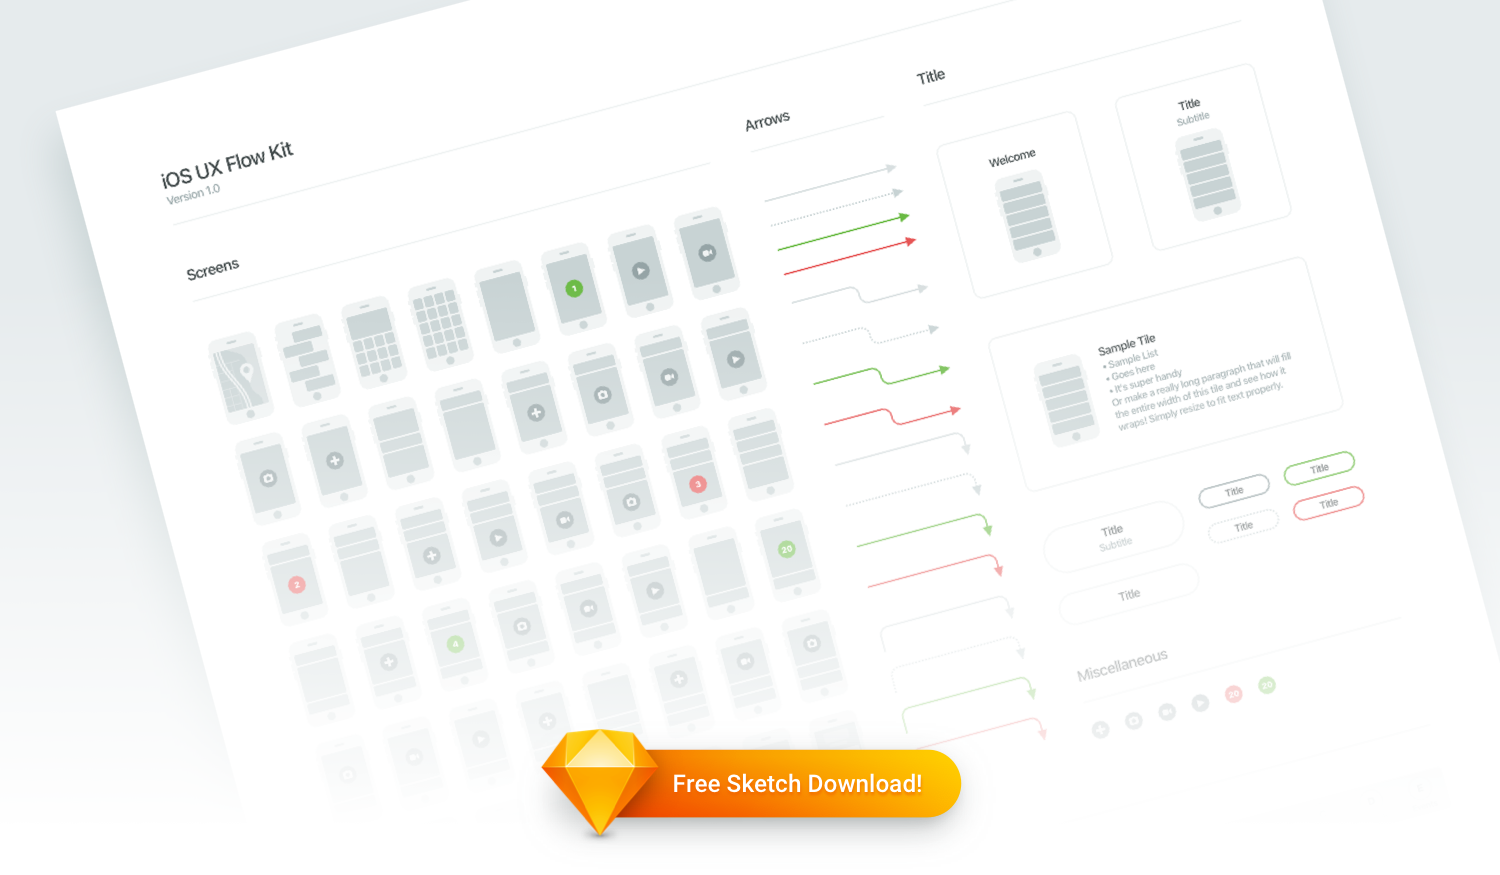 Free Sketch Download: iOS UX Flow Kit – Insightful Software